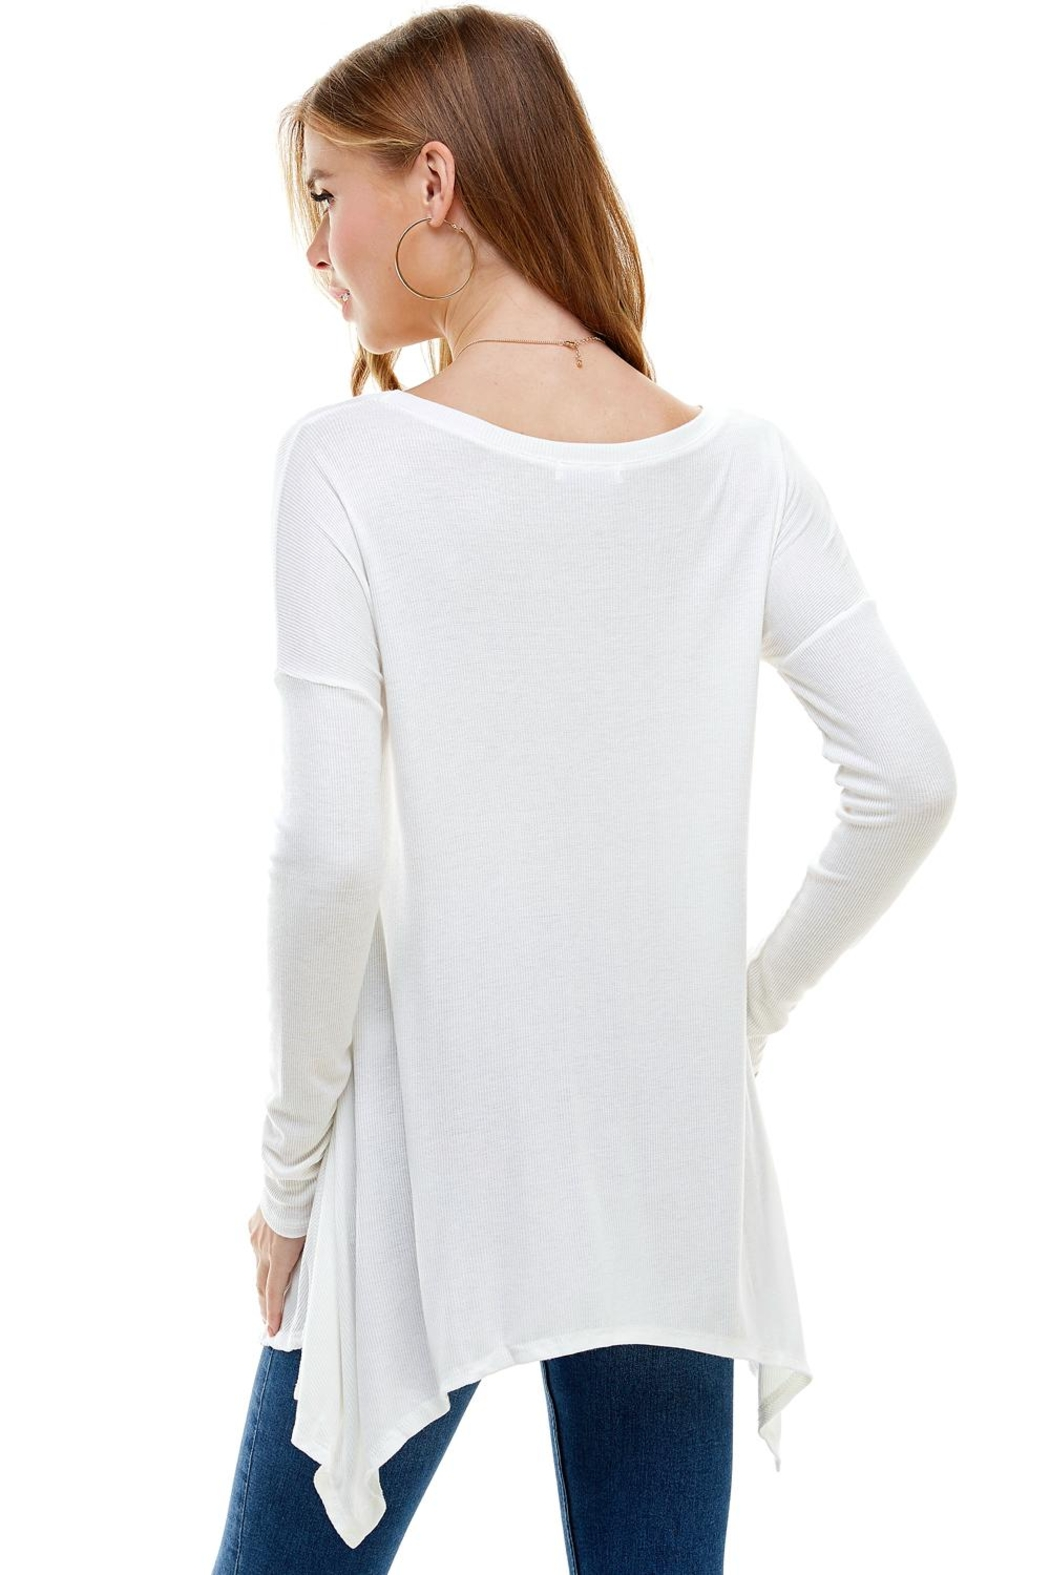 Miley and Molly Everyday Favorite Ribbed Knit Top - Back Cropped Image